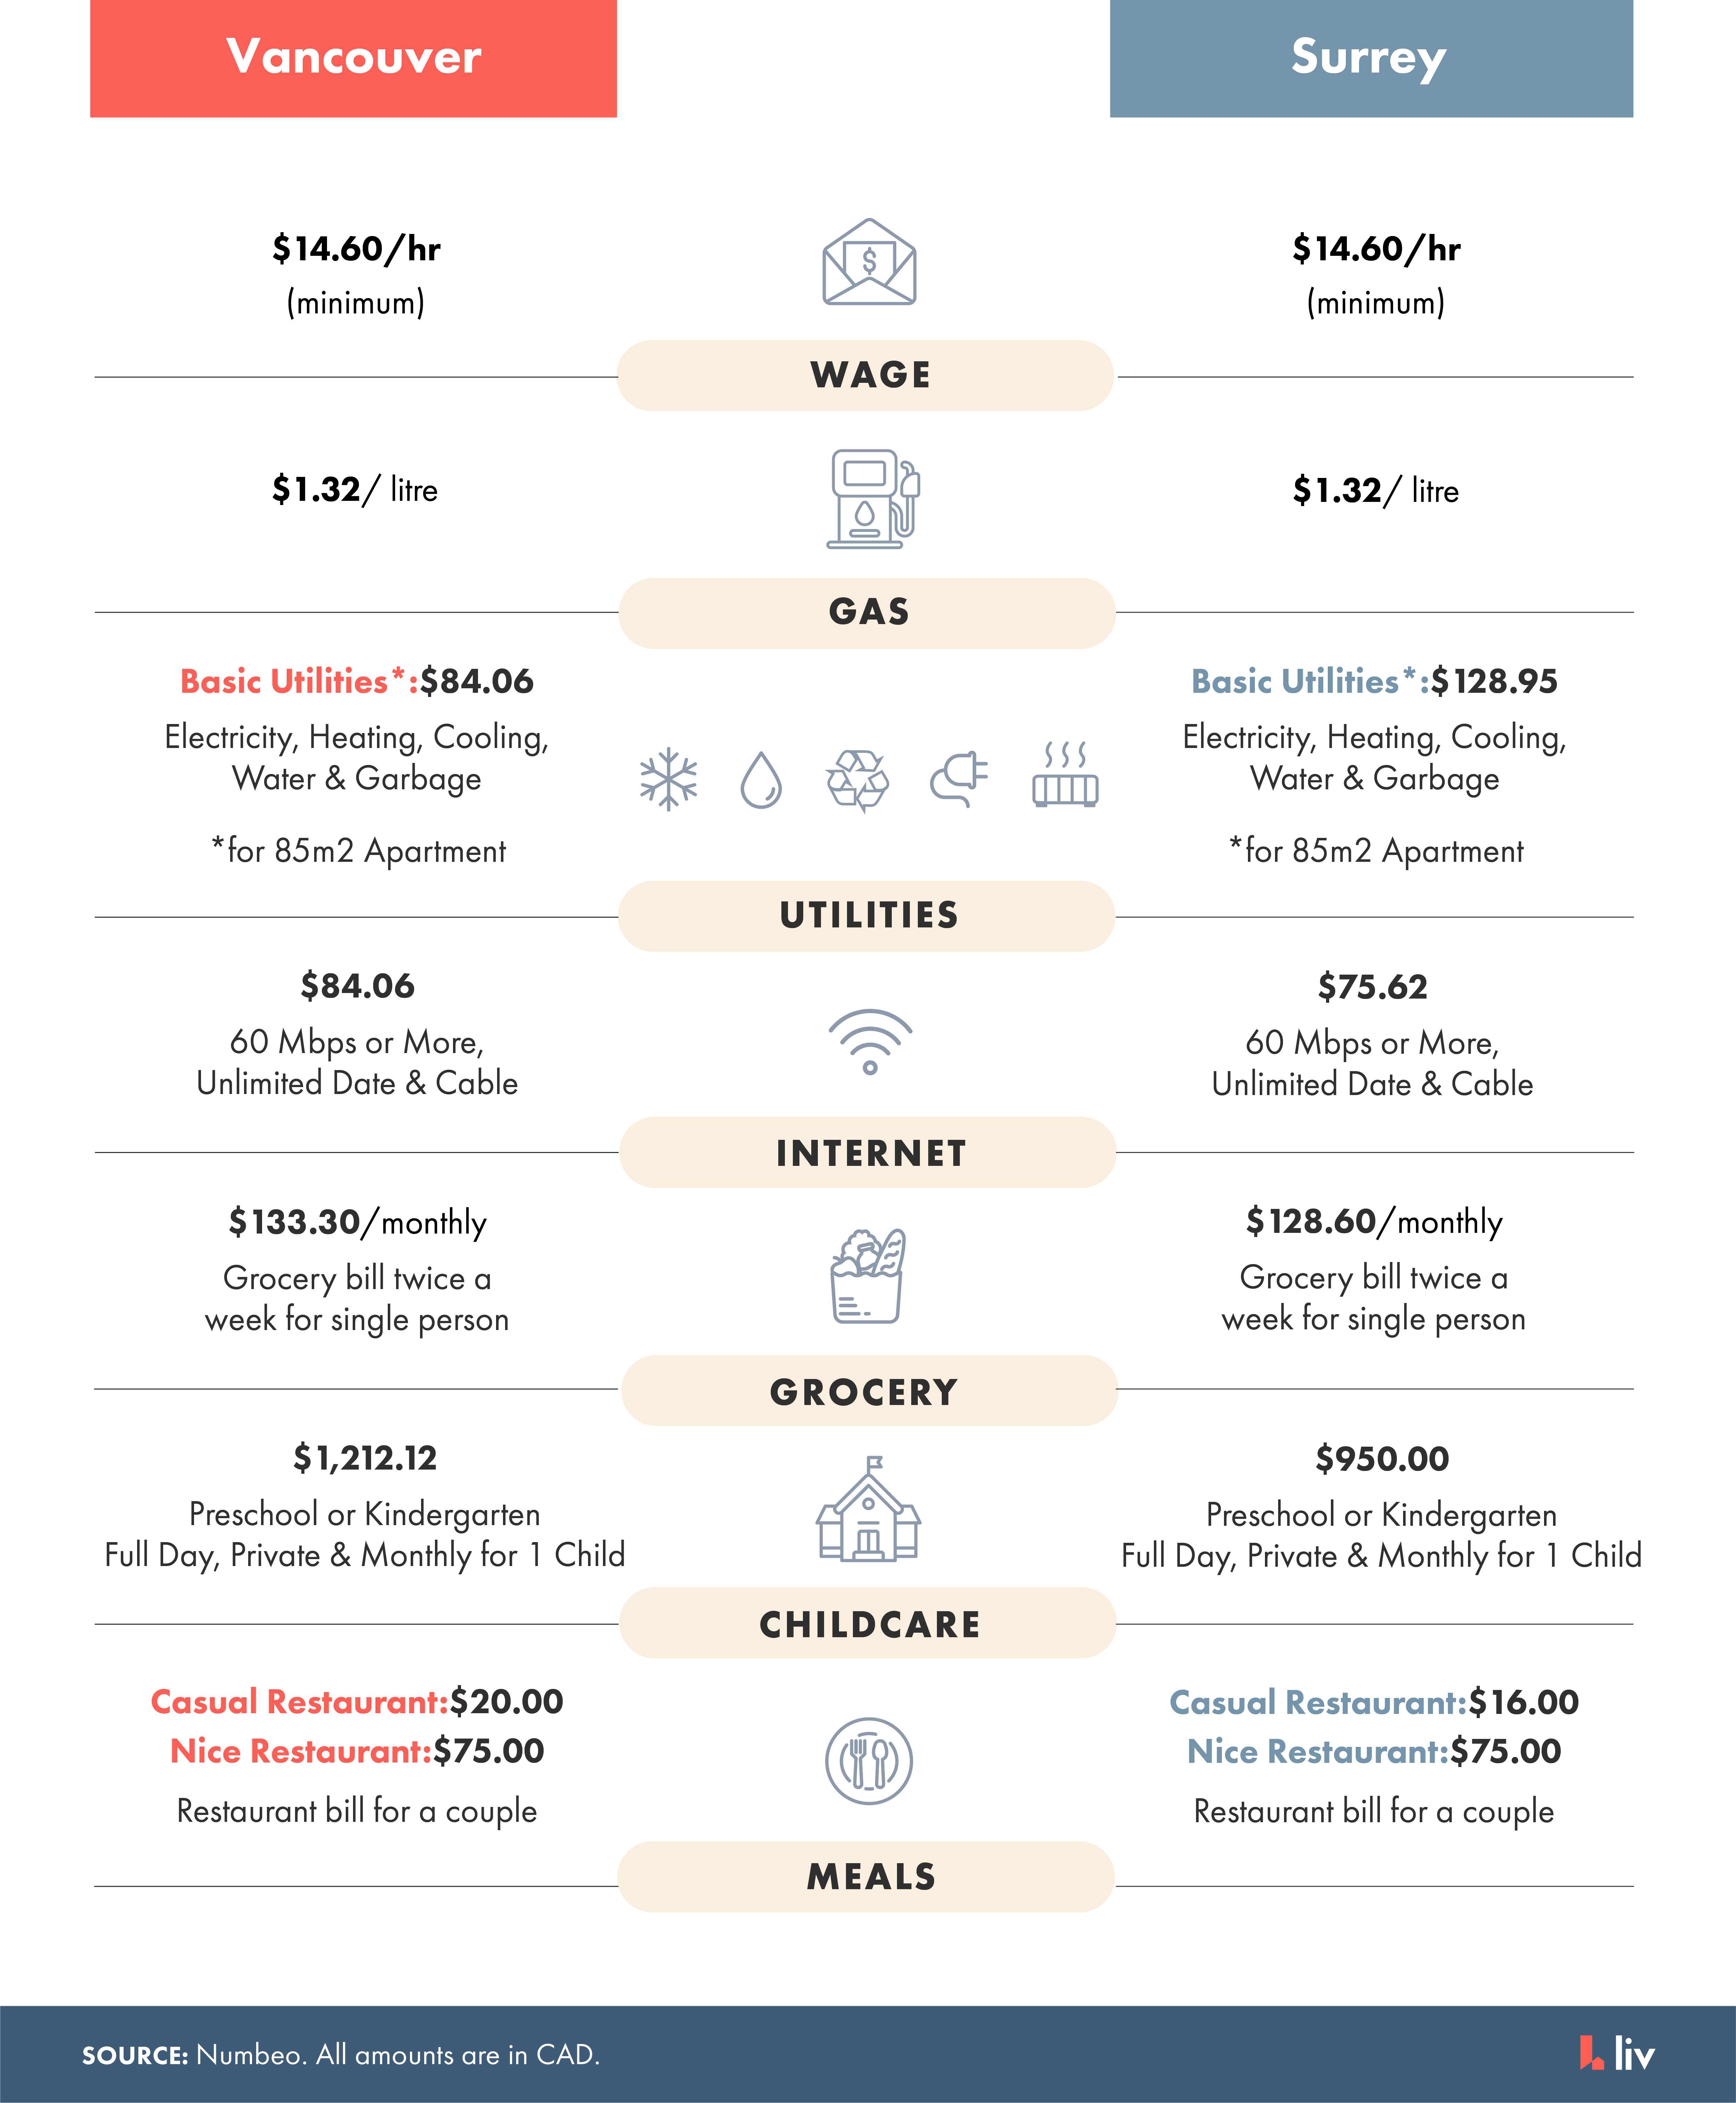 The cost of living comparison of Surrey vs Vancouver.